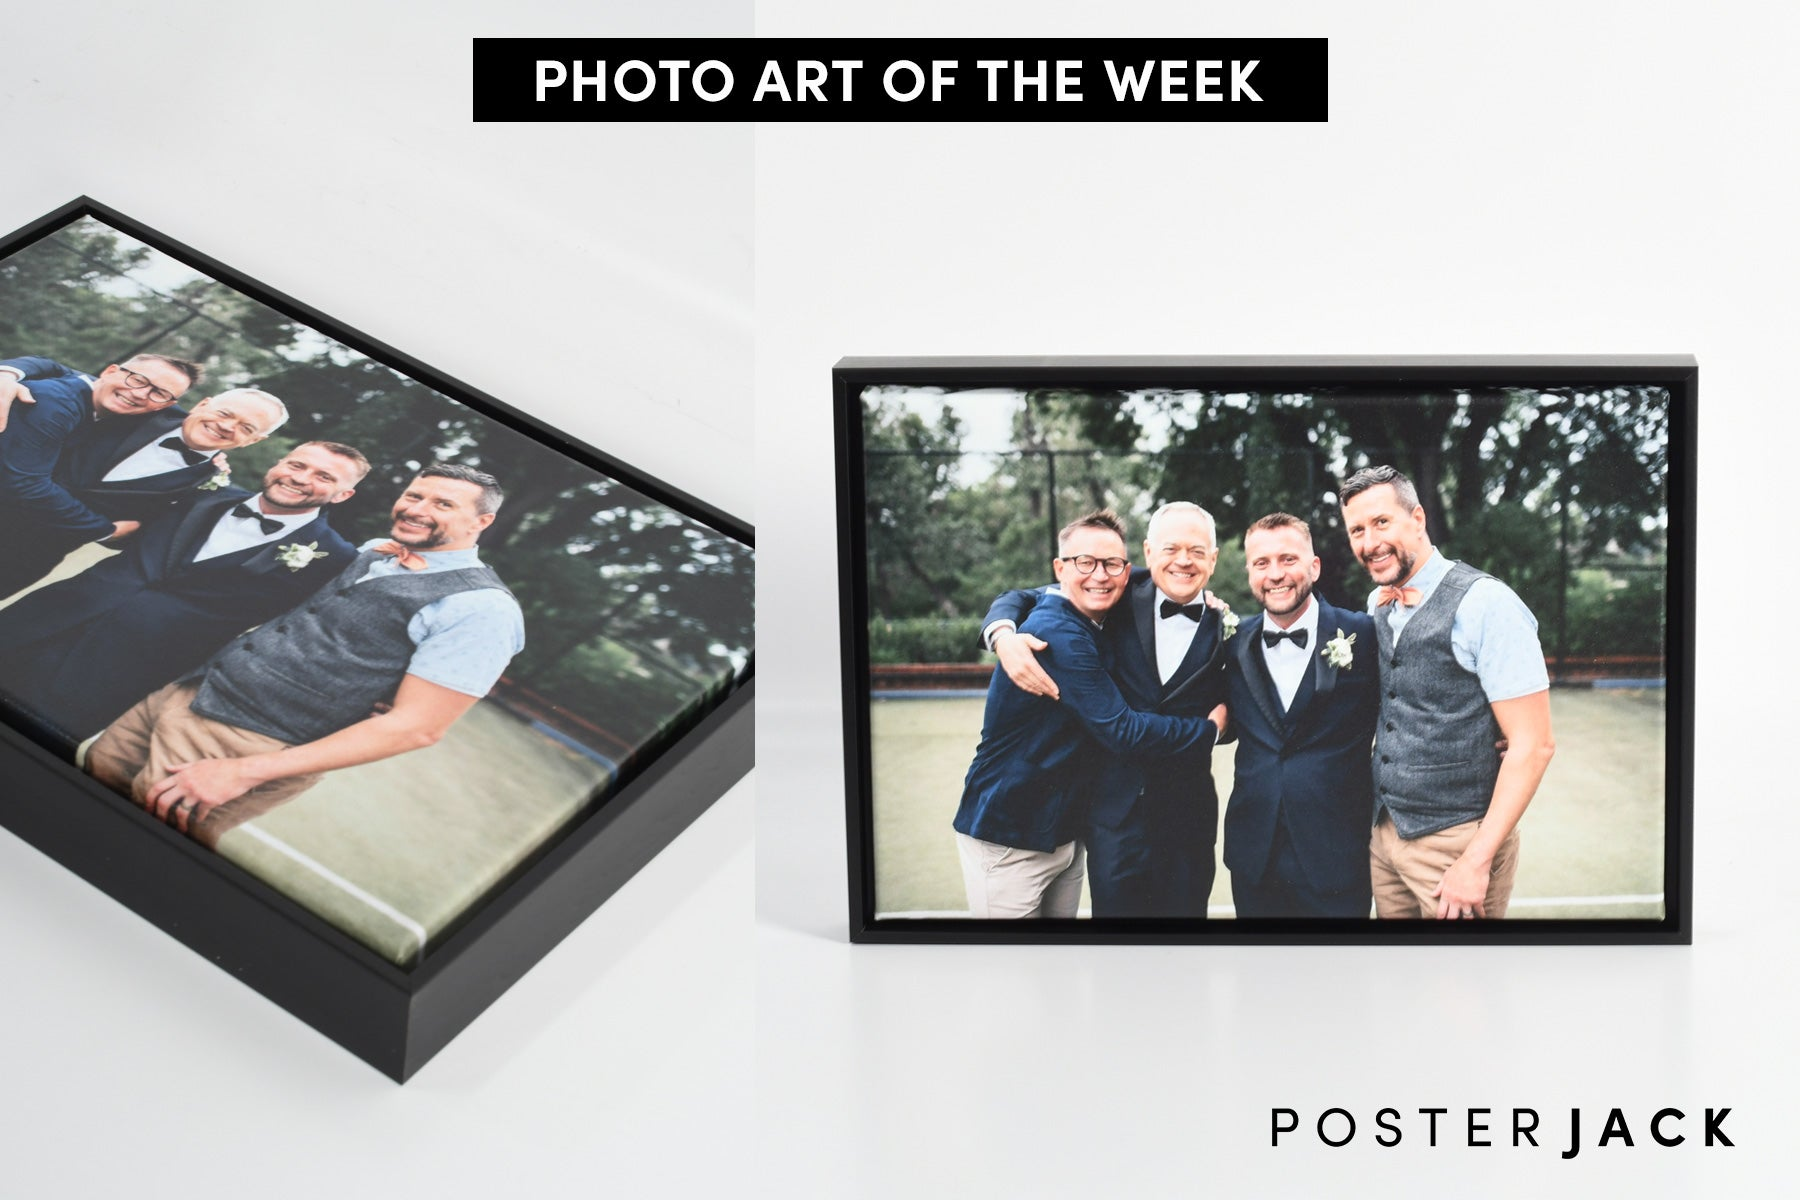 Wedding Photo - Framed Canvas Print - Posterjack Photo Art of The Week